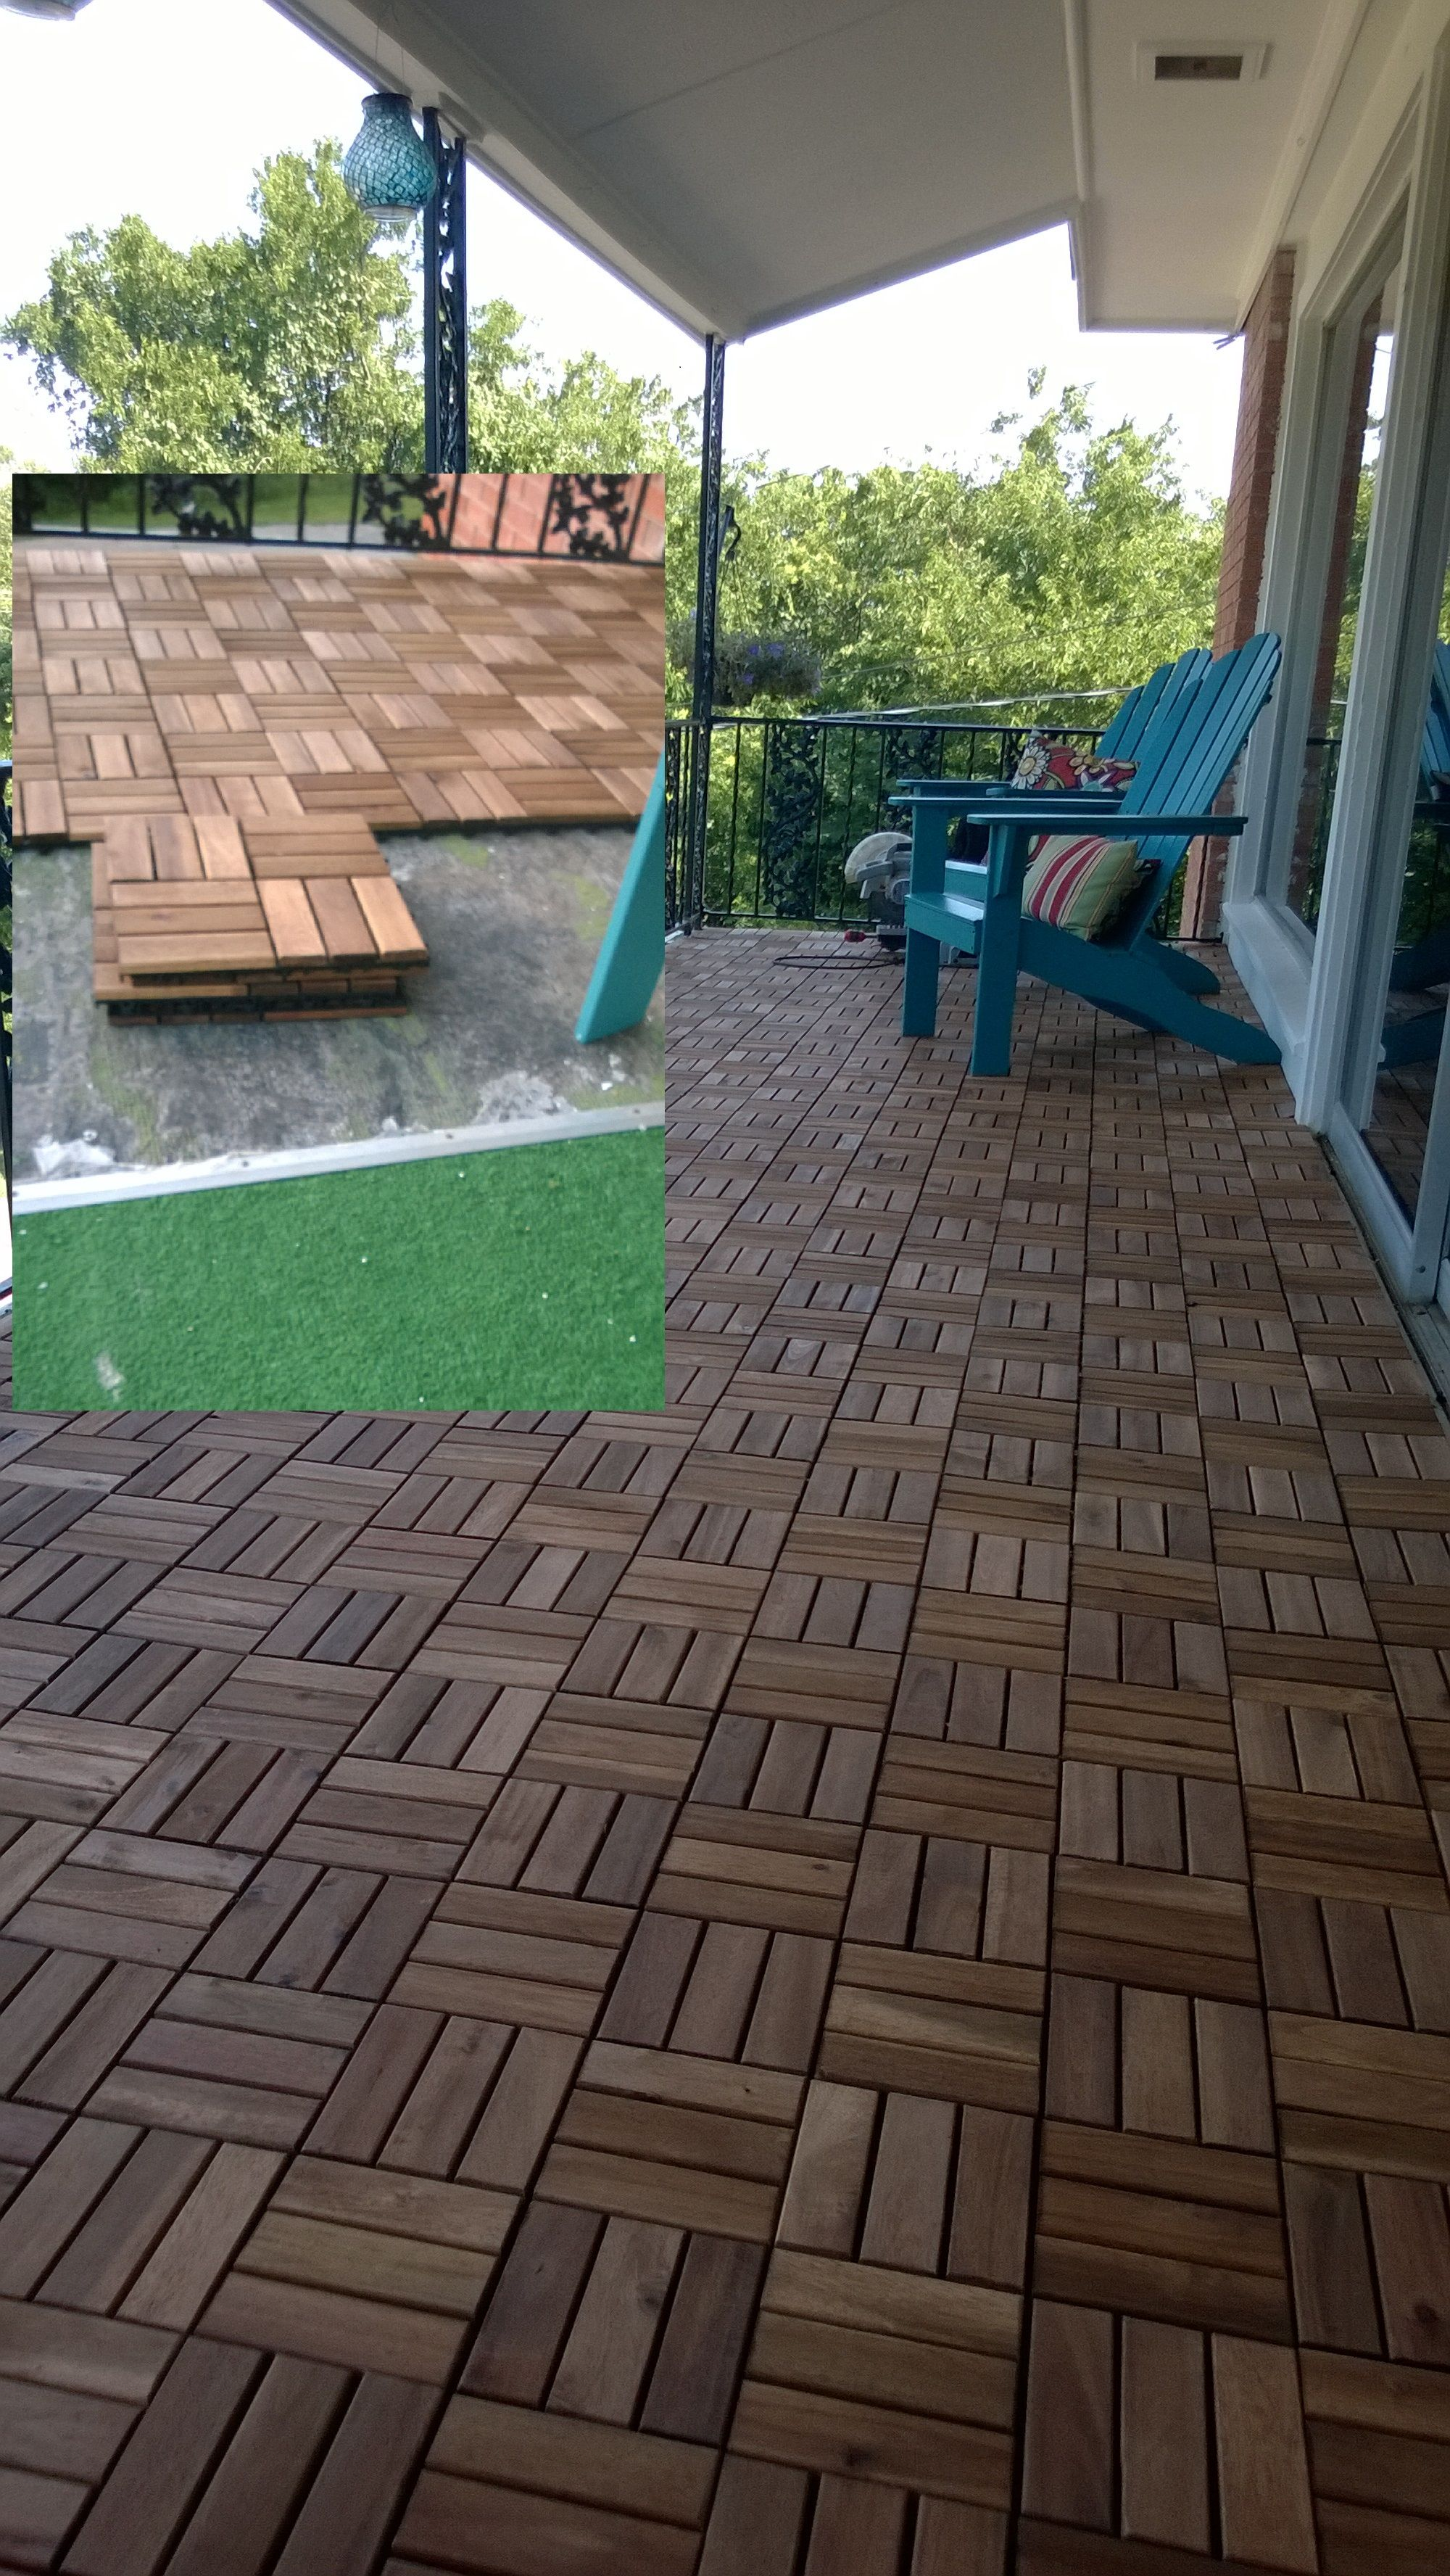 Covered the many layers of astroturf with ikea acacia deck tiles covered the many layers of astroturf with ikea acacia deck tiles doublecrazyfo Choice Image